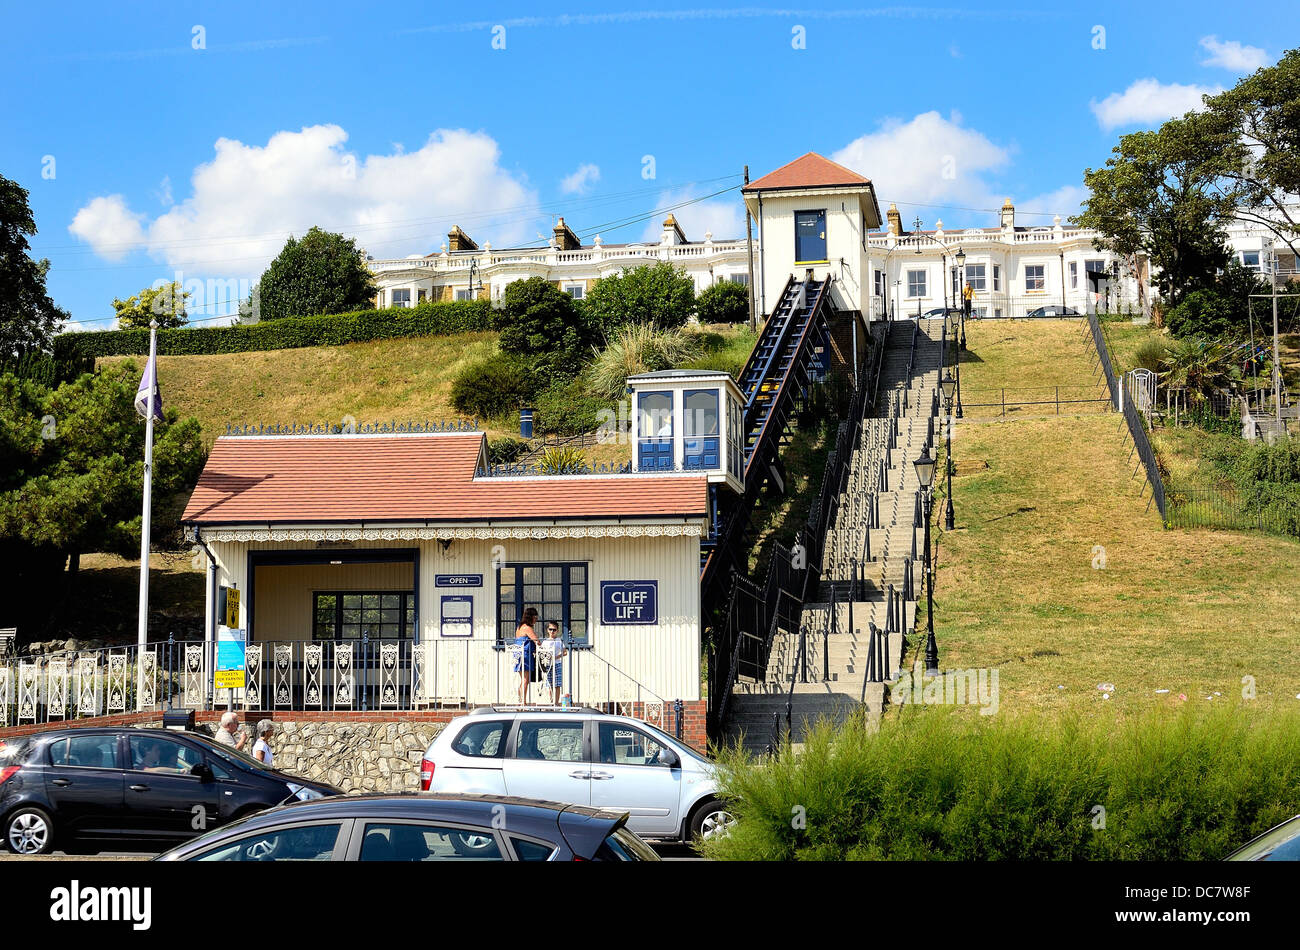 Cliff Lift  on the seafront at Southend on Sea Essex - Stock Image